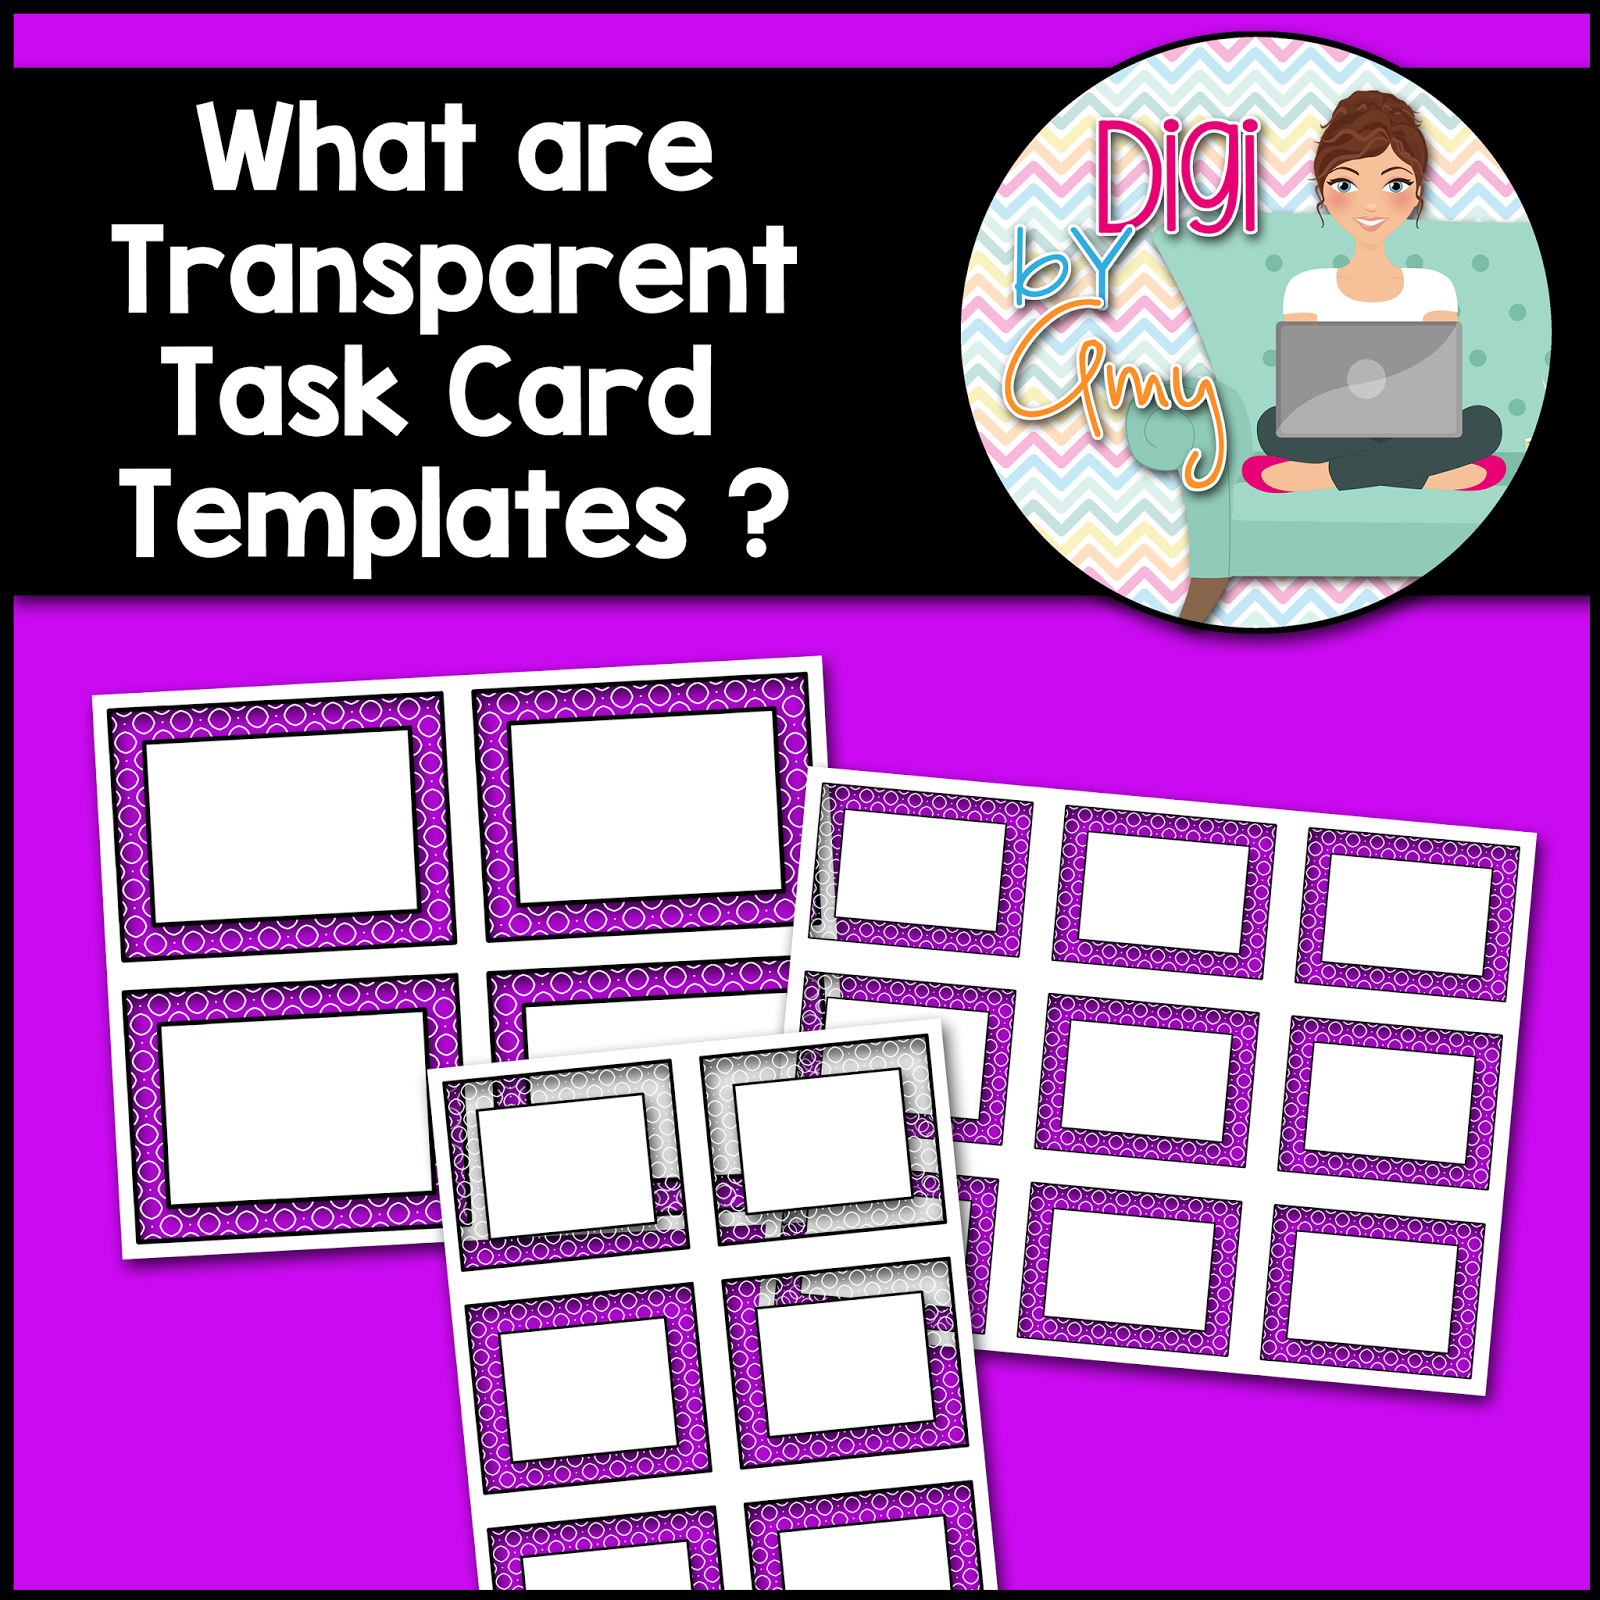 Digi By Amy What Are Transparent Task Card Templates